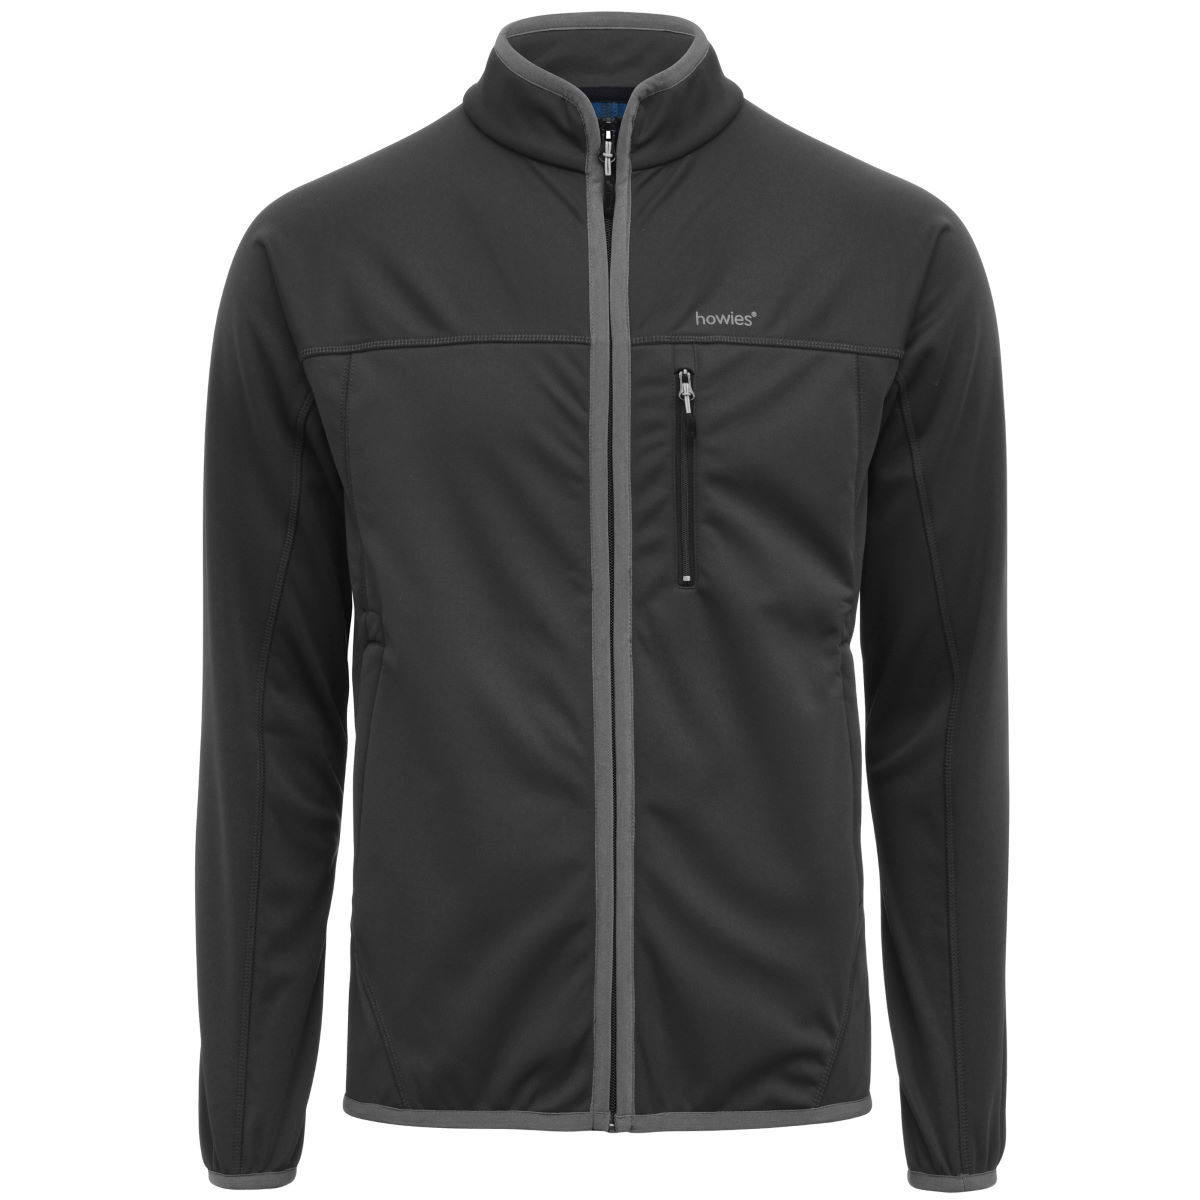 Veste howies Mr Soft Softshell - XL Phantom